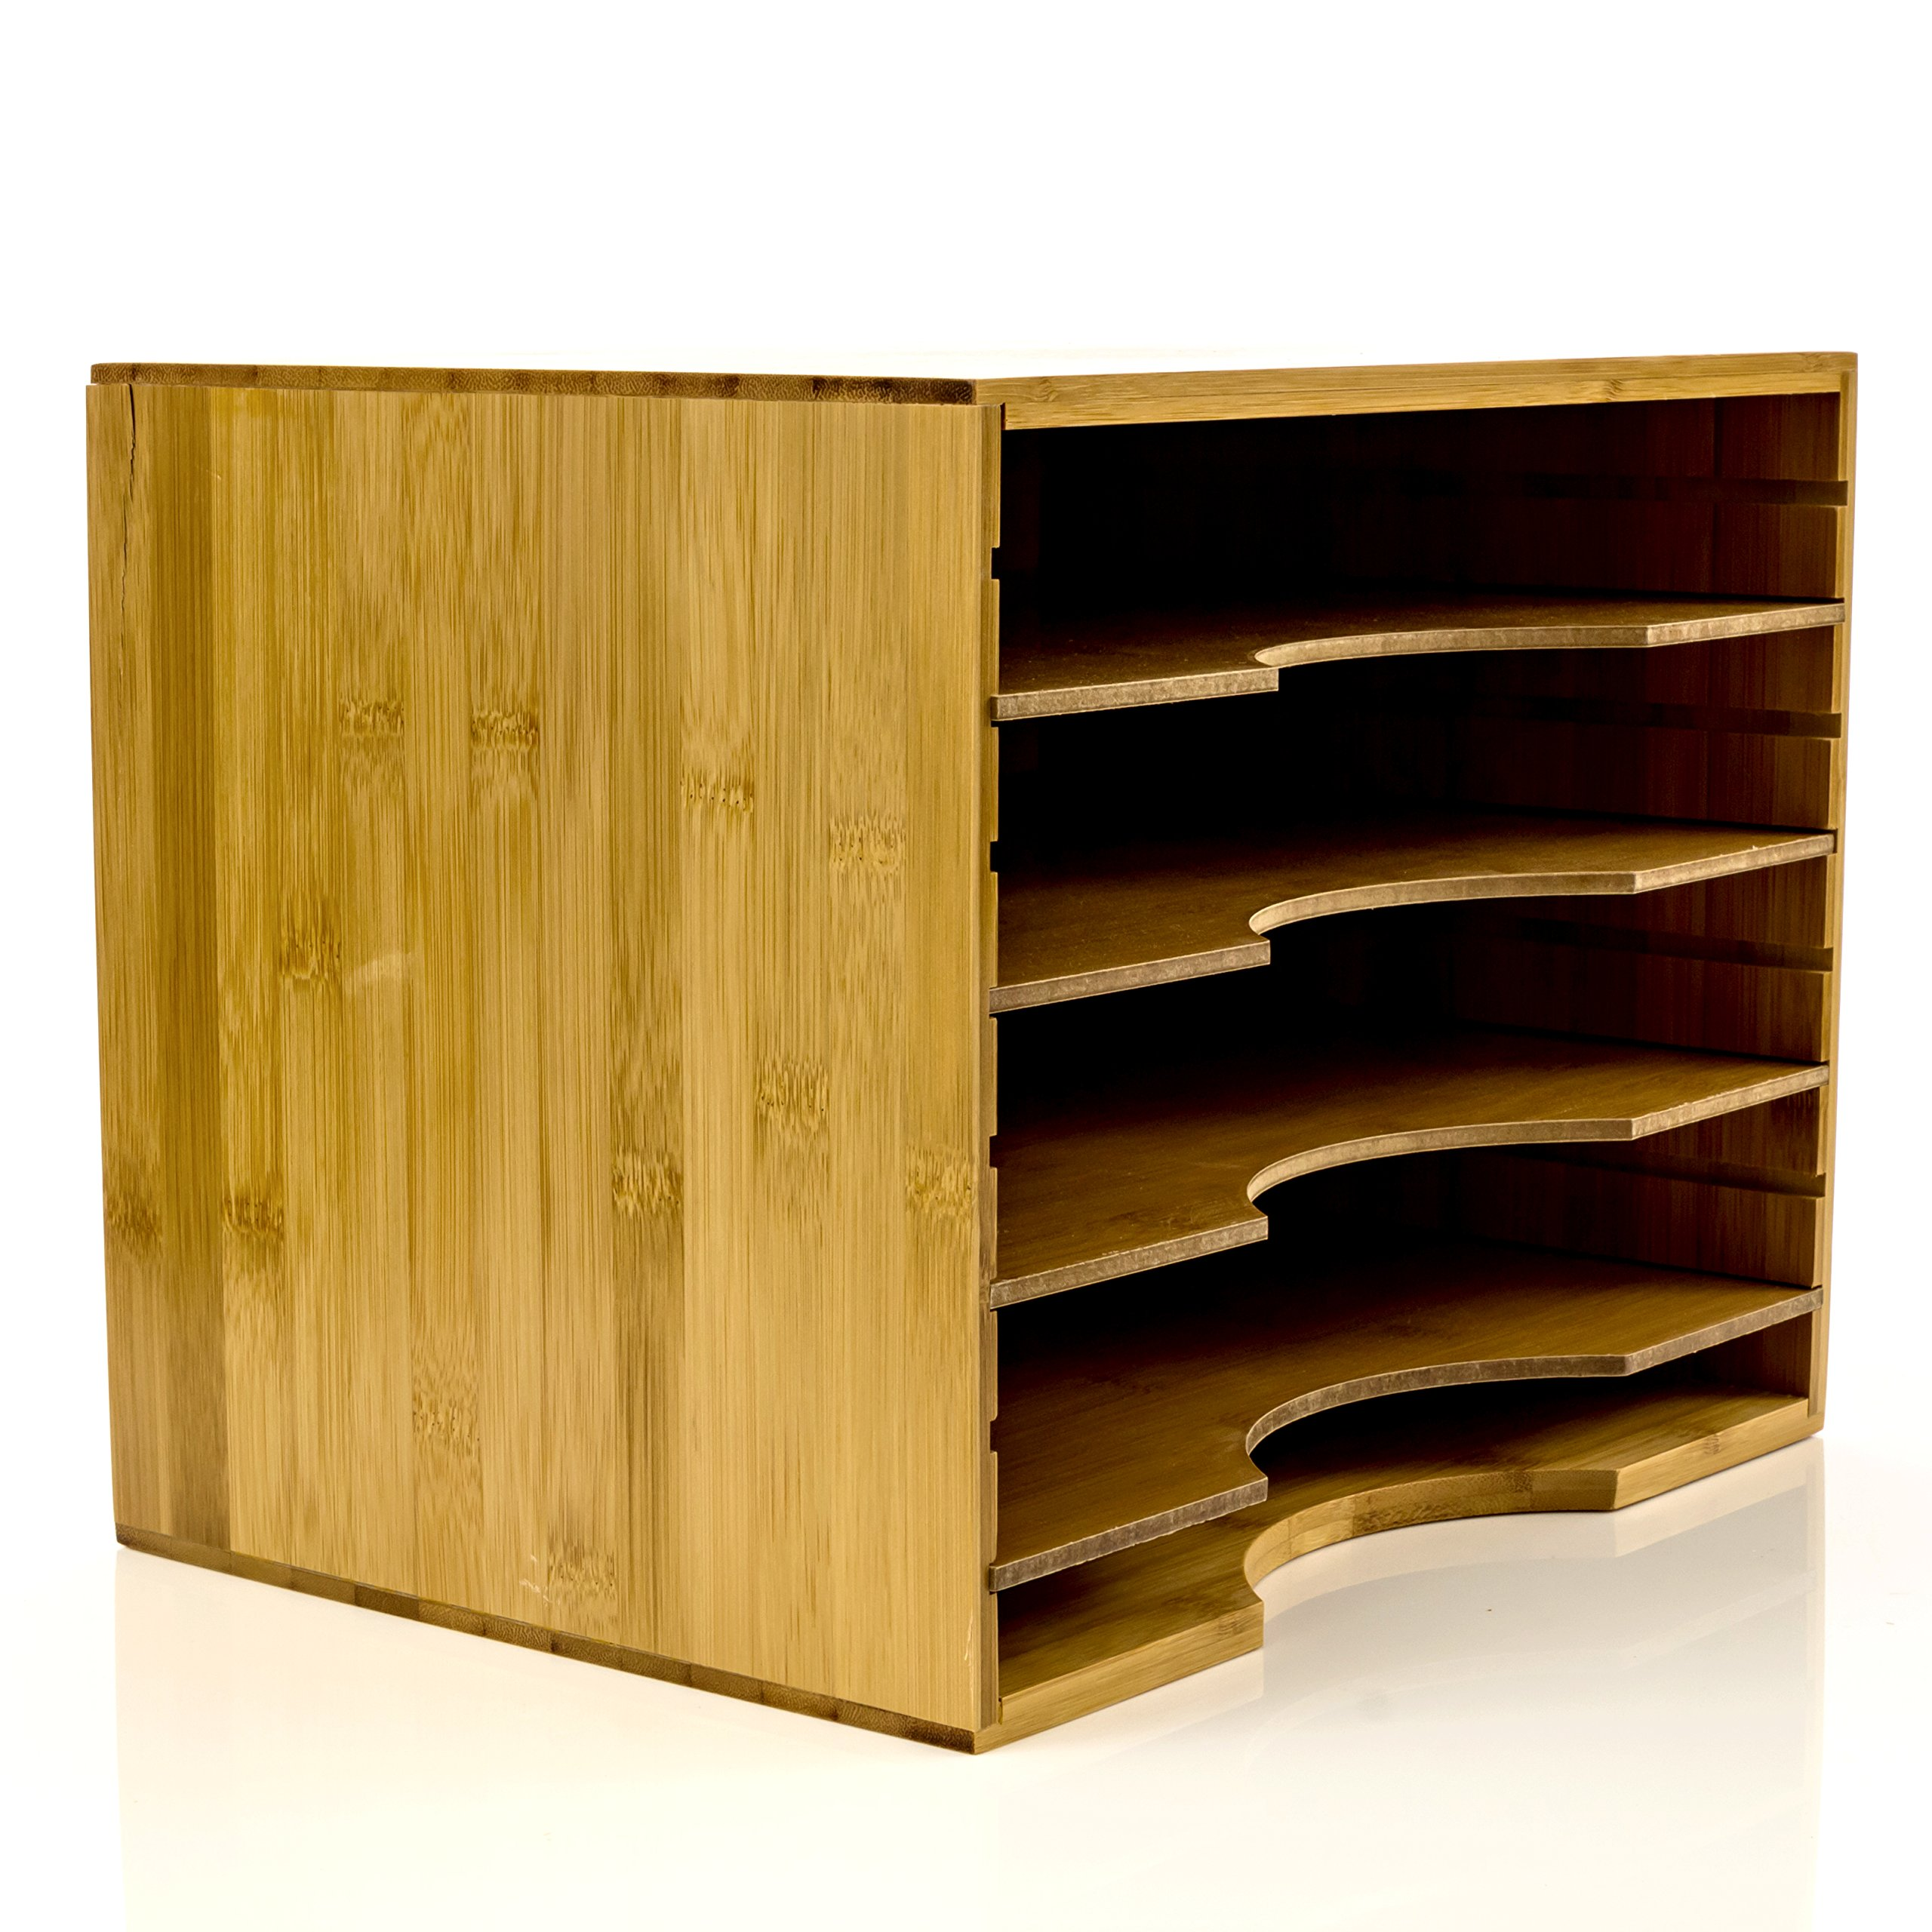 File Organizer Mail sorter, With Four Adjustable Dividers Natural Bamboo wood Color By Intriom Bamboo Collection (File Organizer) by Intriom (Image #4)